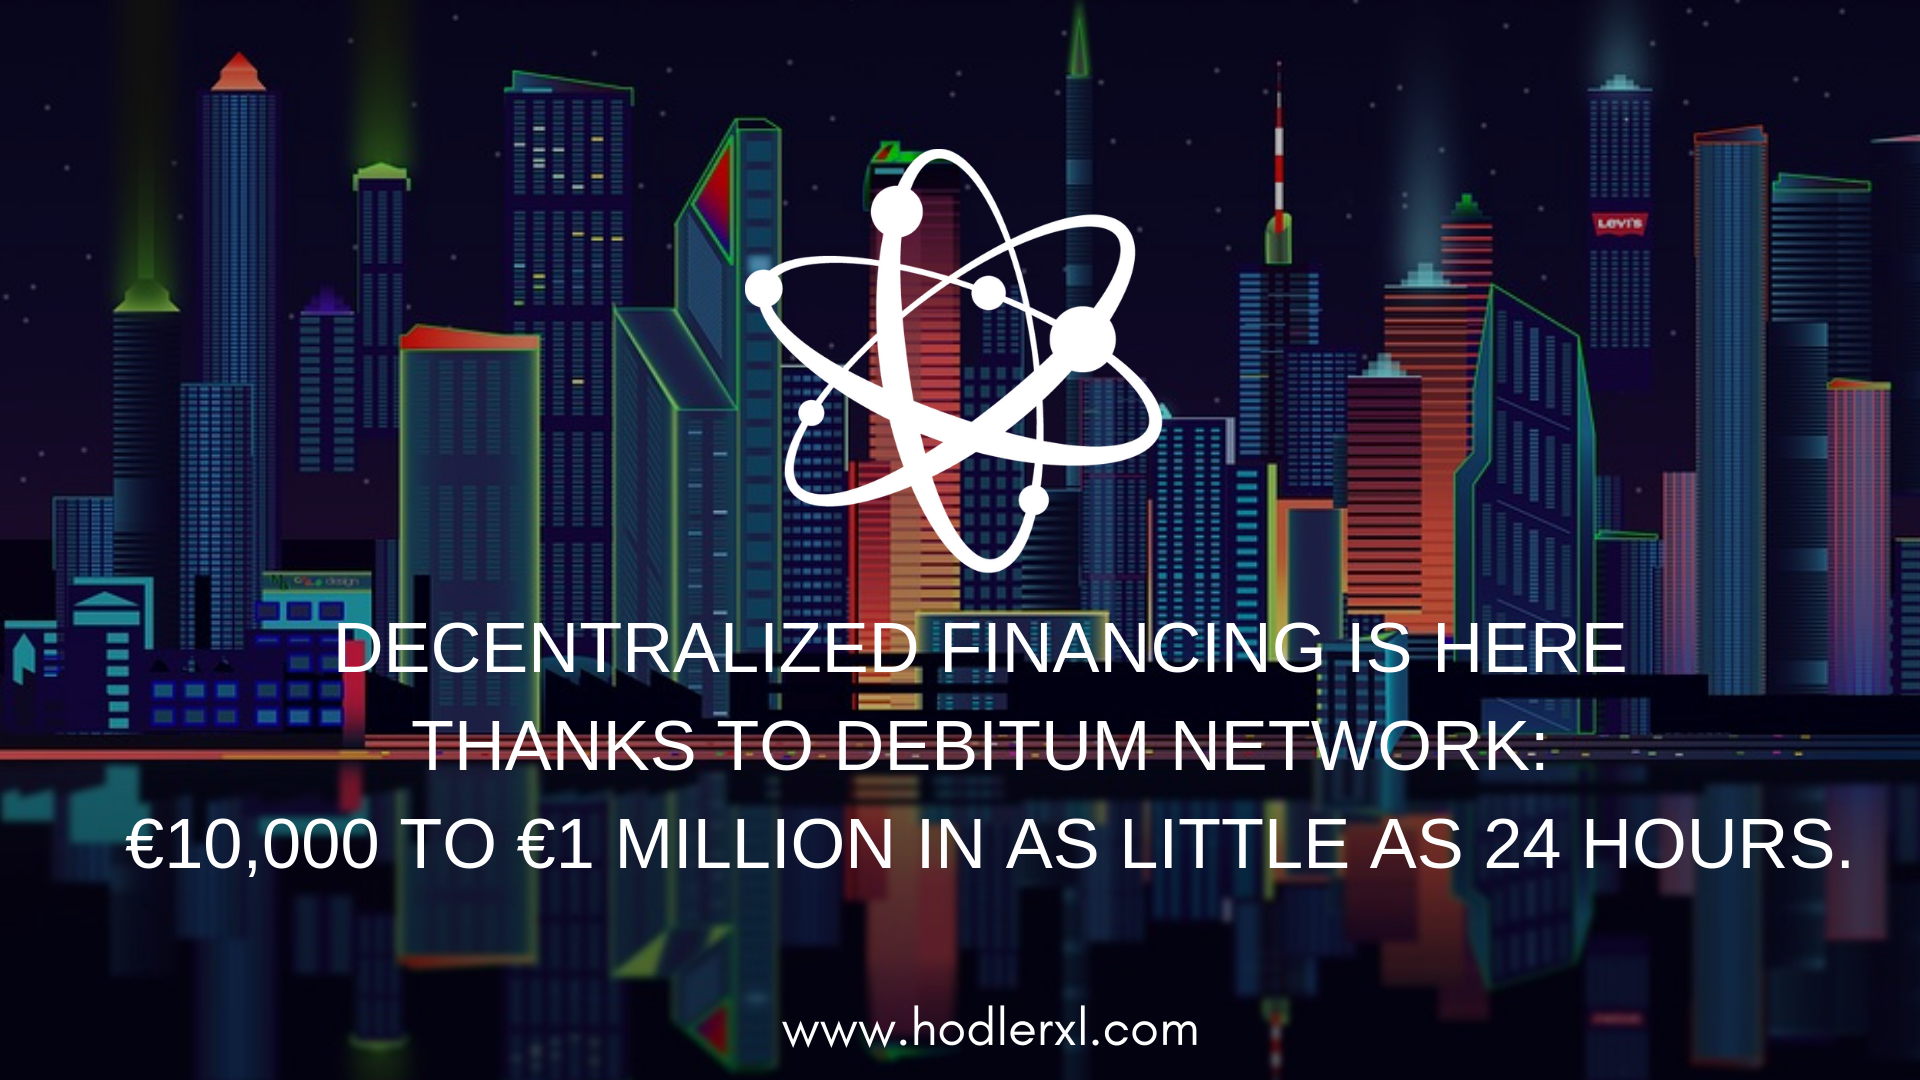 Decentralized Financing is here thanks to Debitum Network_ €10,000 to €1 million in as little as 24 hours.